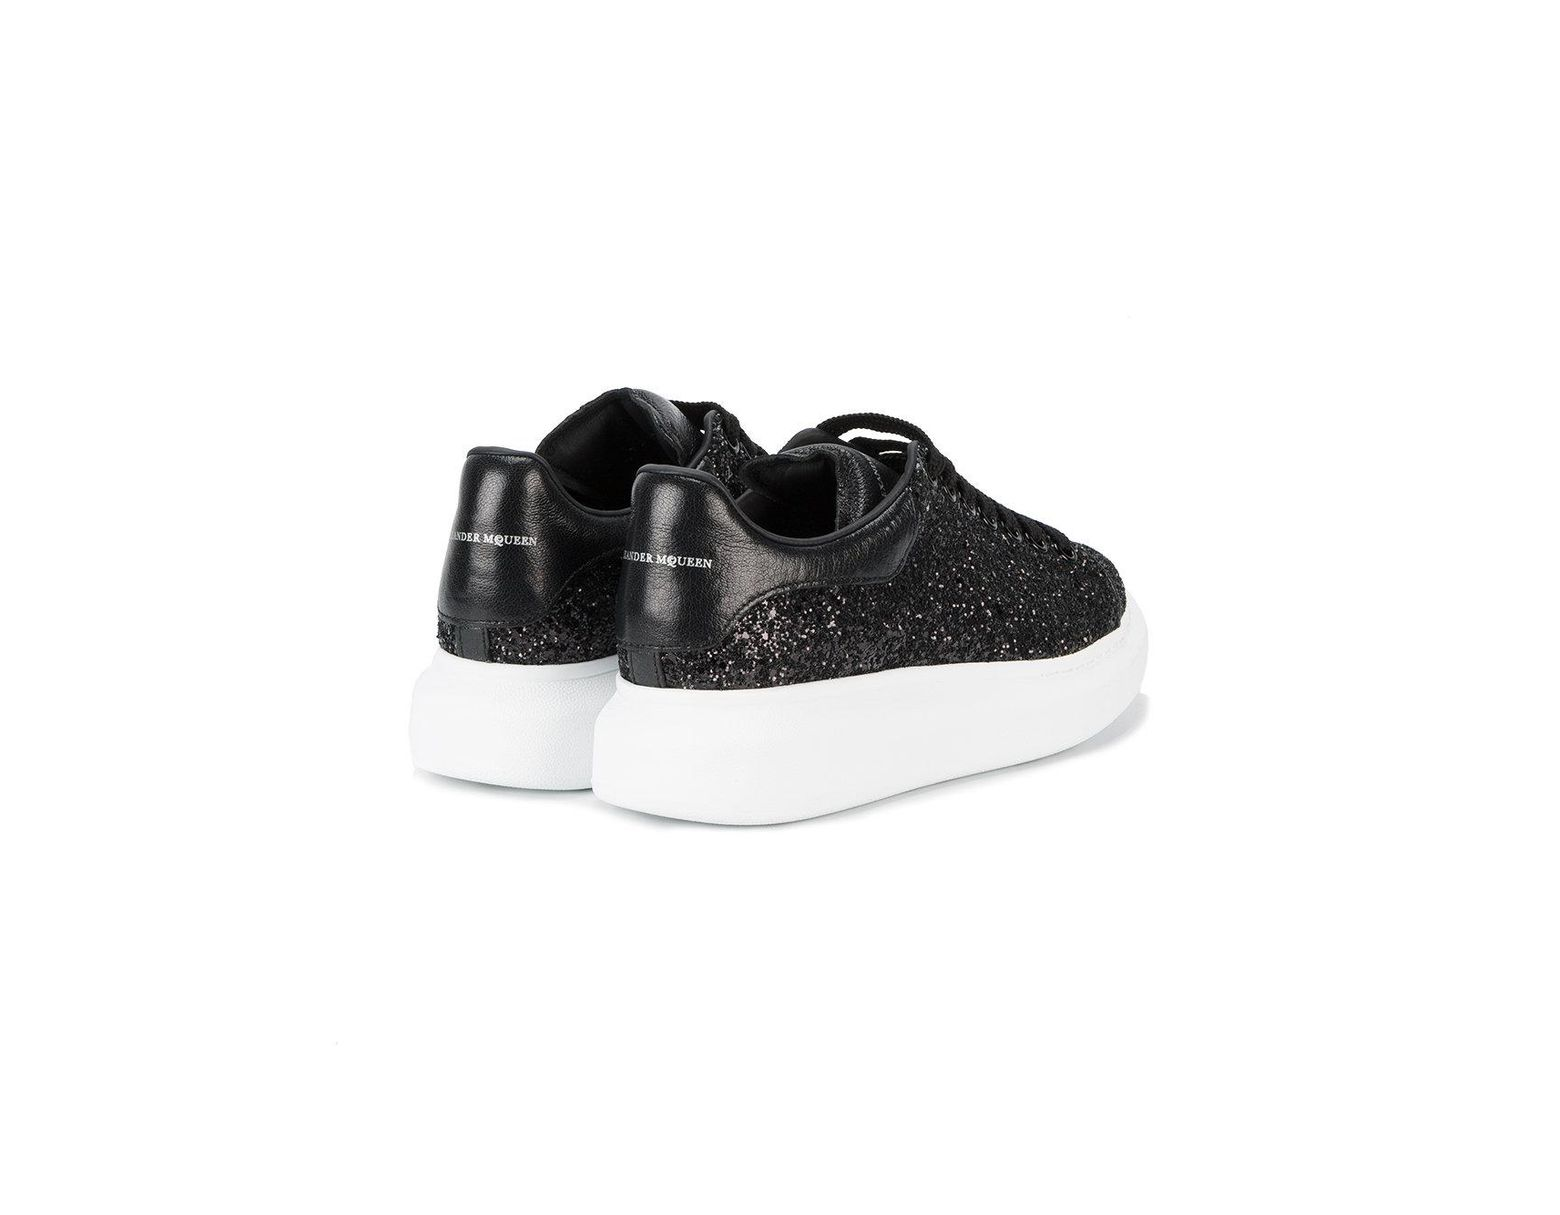 37124d054696 Alexander McQueen Black Glitter Platform Sneakers in Black - Save 15% - Lyst